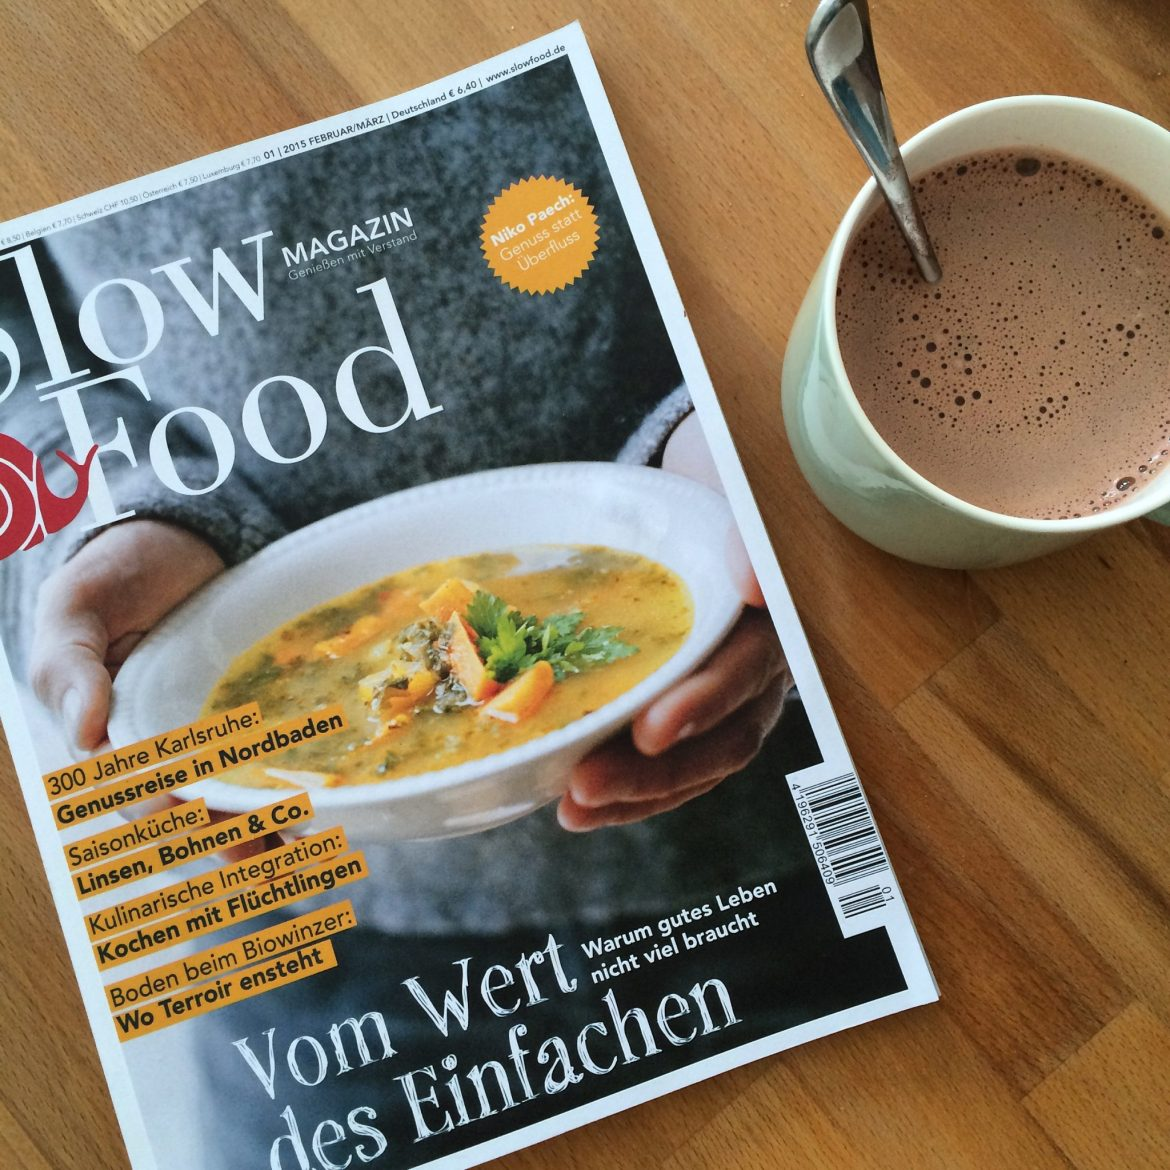 Slow Food magazine and a hot chocolate